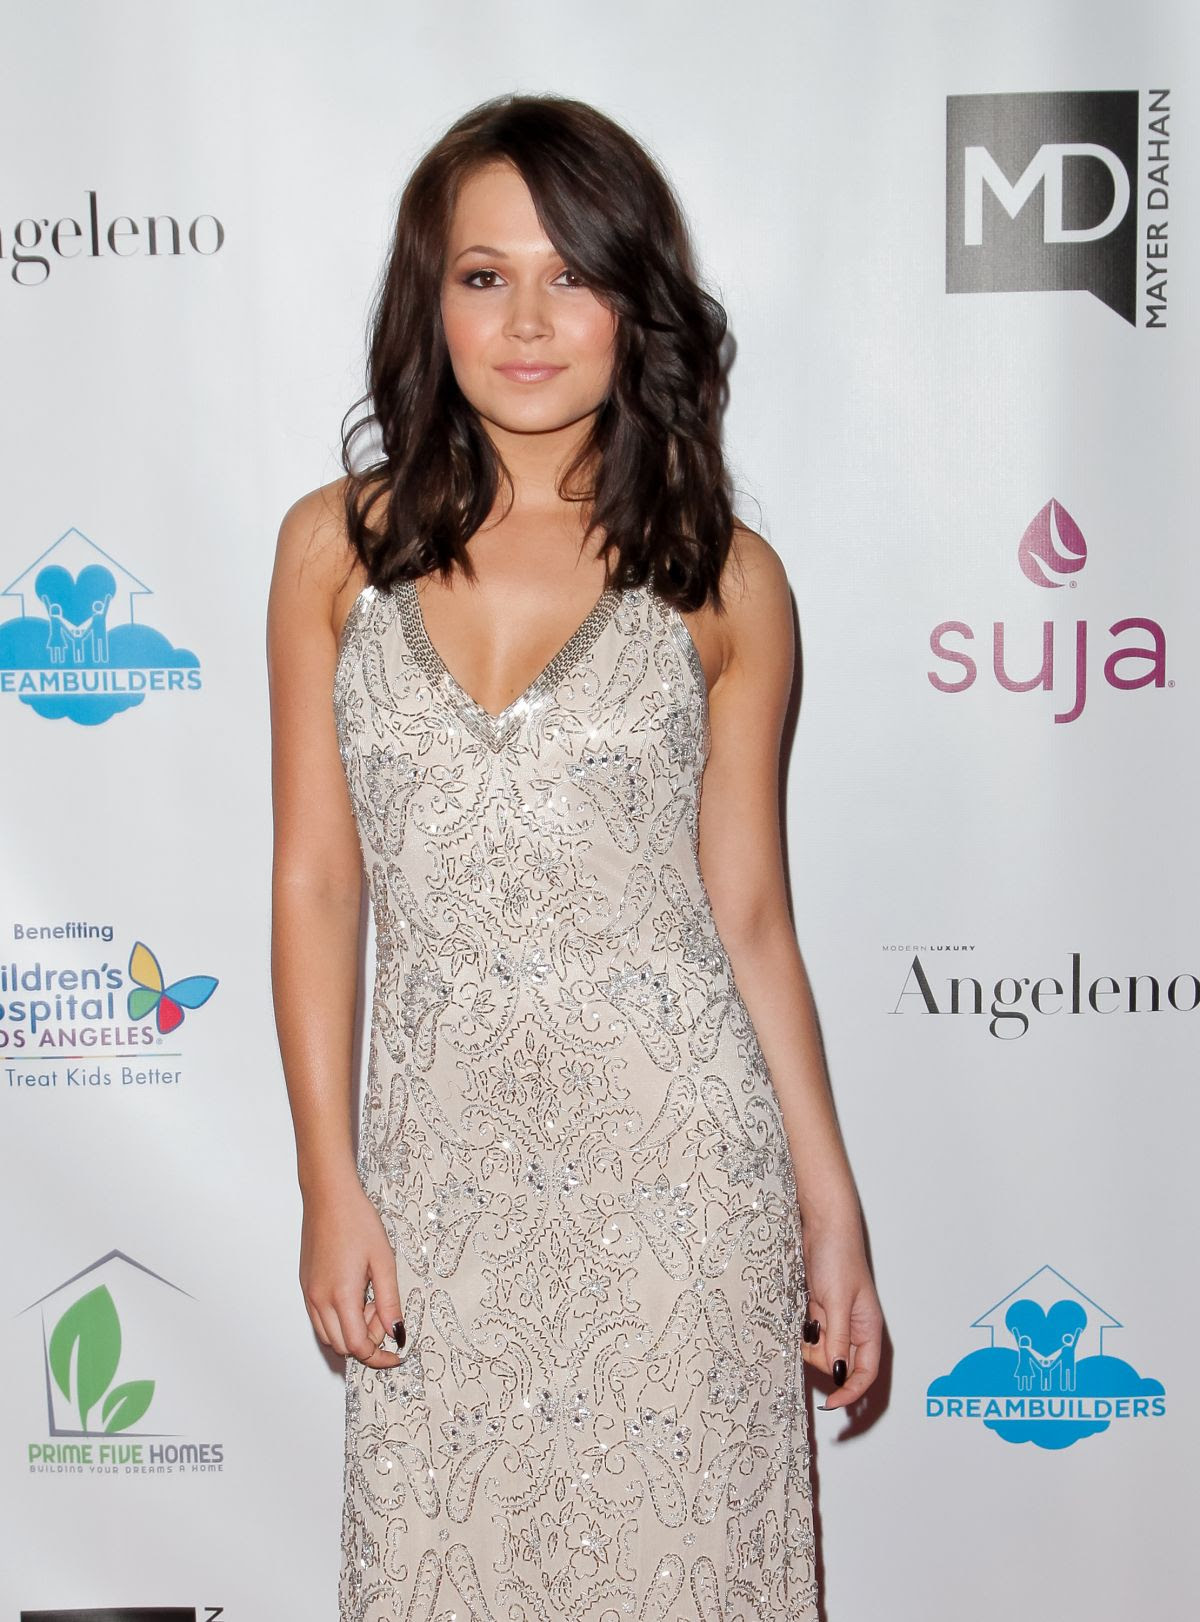 KELLI BERGLUND at The Art of Friendship Benefit Photoauction in West Hollywood 03/03/2016